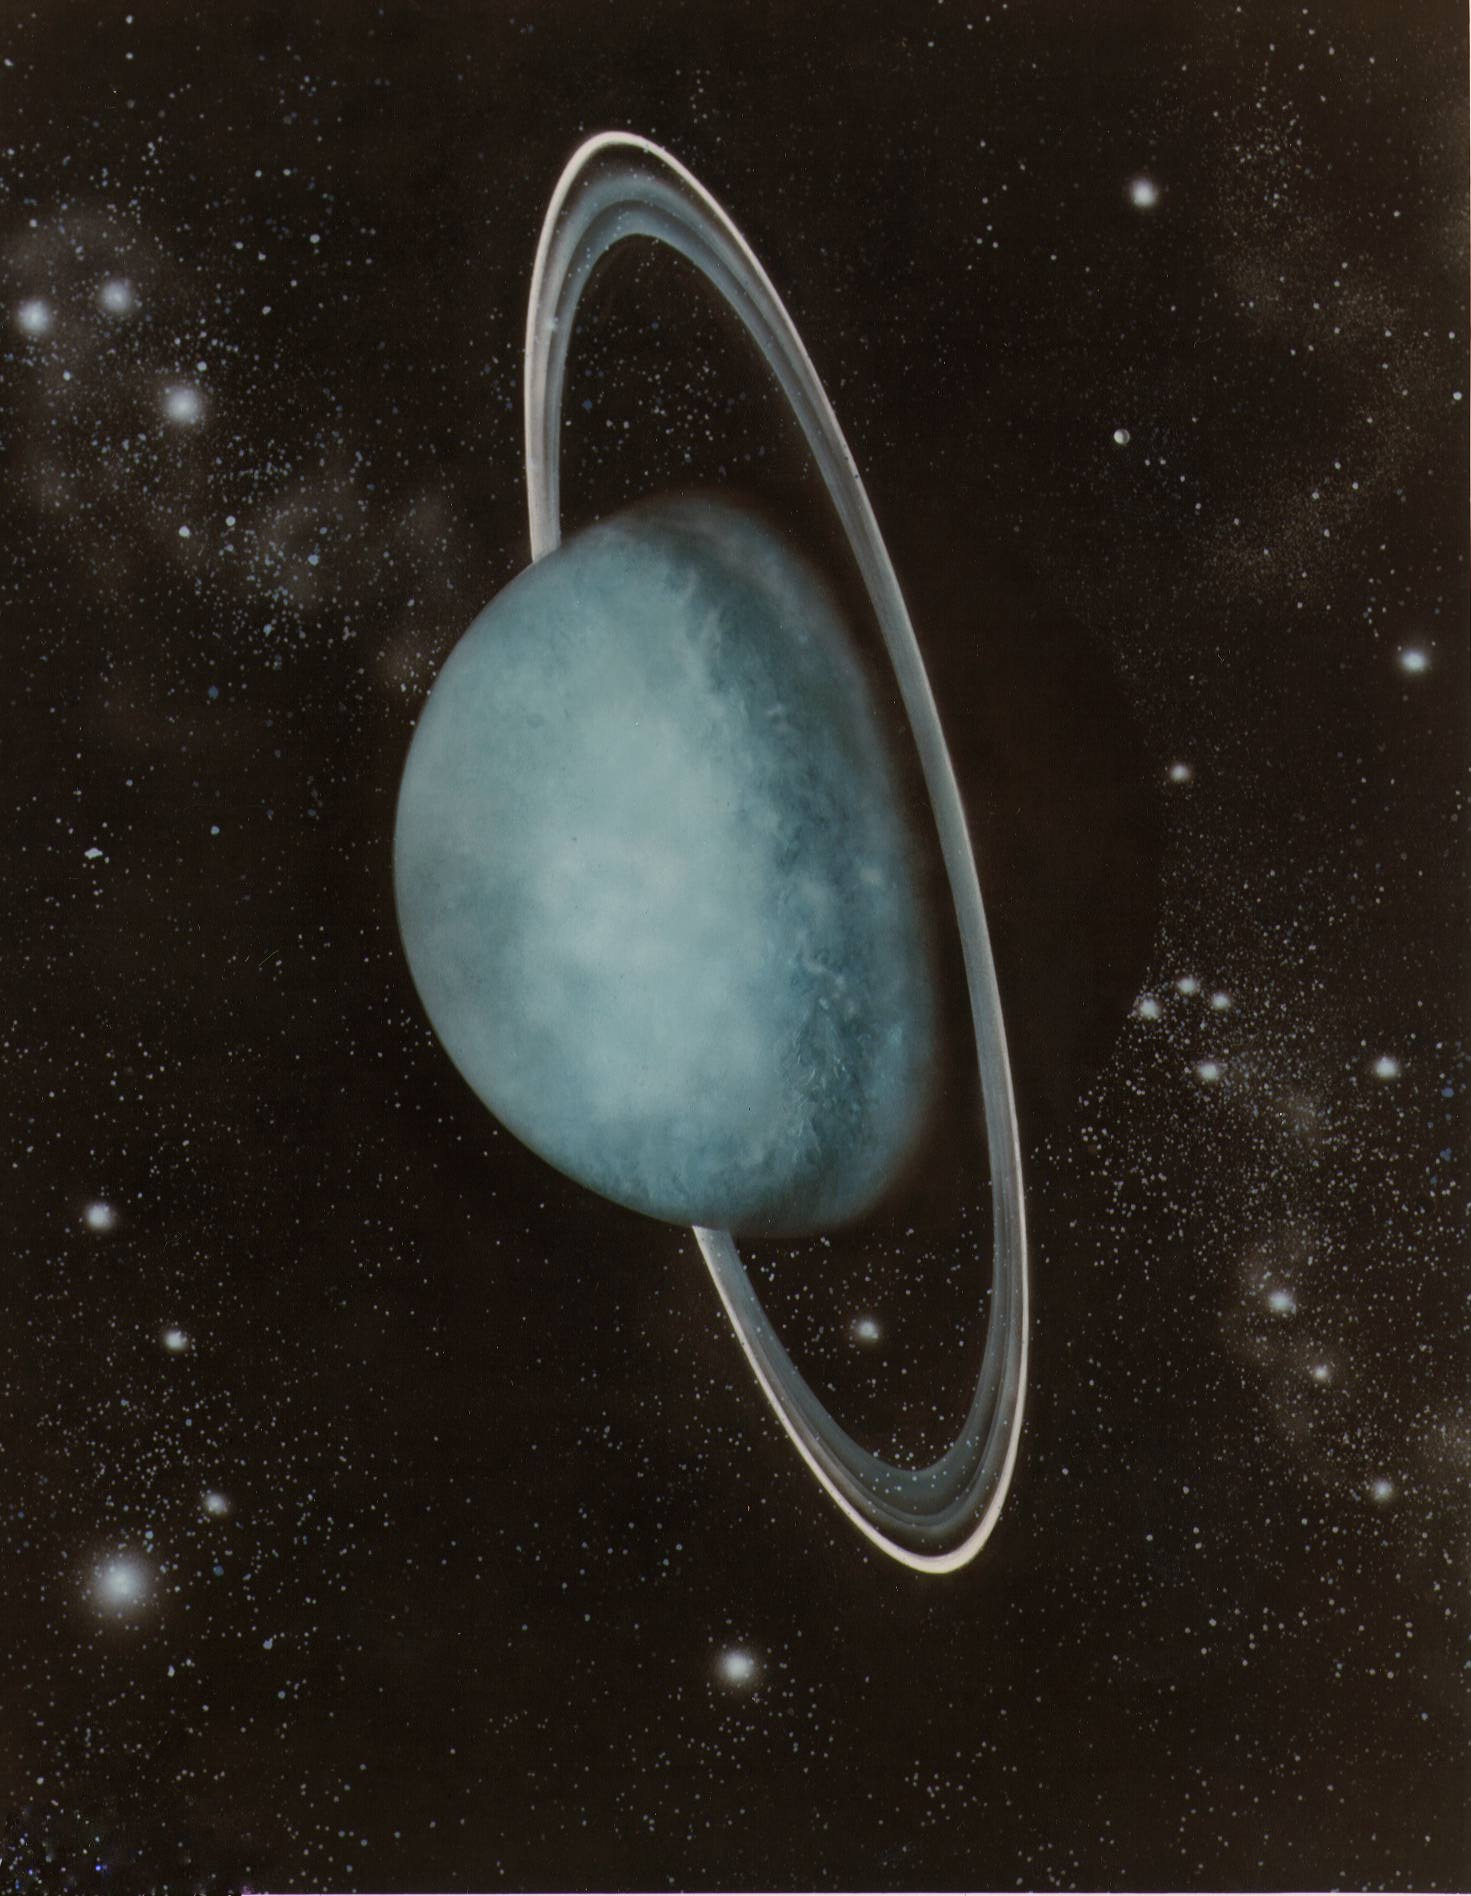 a report on william herschels discovery of uranus the seventh planet of the solar system Once considered one of the blander-looking planets, uranus has been revealed as a dynamic world with some of the brightest clouds in the outer solar system and 11 rings.